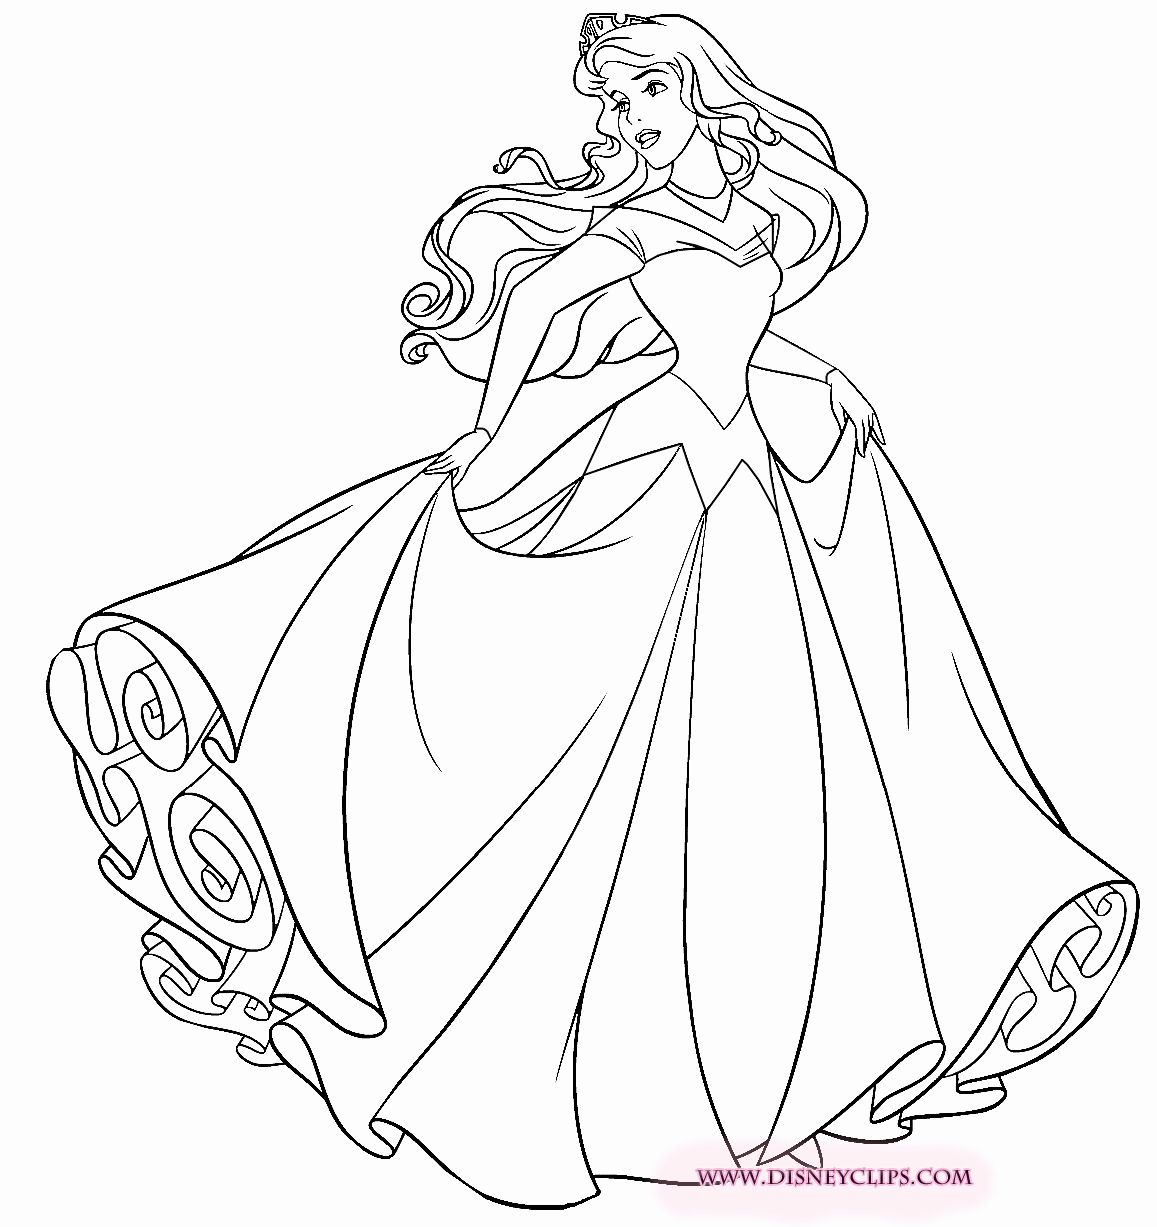 Aurora Disney Coloring Pages Best Of Princess Aurora Coloring Page Princes In 2020 Disney Princess Coloring Pages Disney Princess Colors Sleeping Beauty Coloring Pages